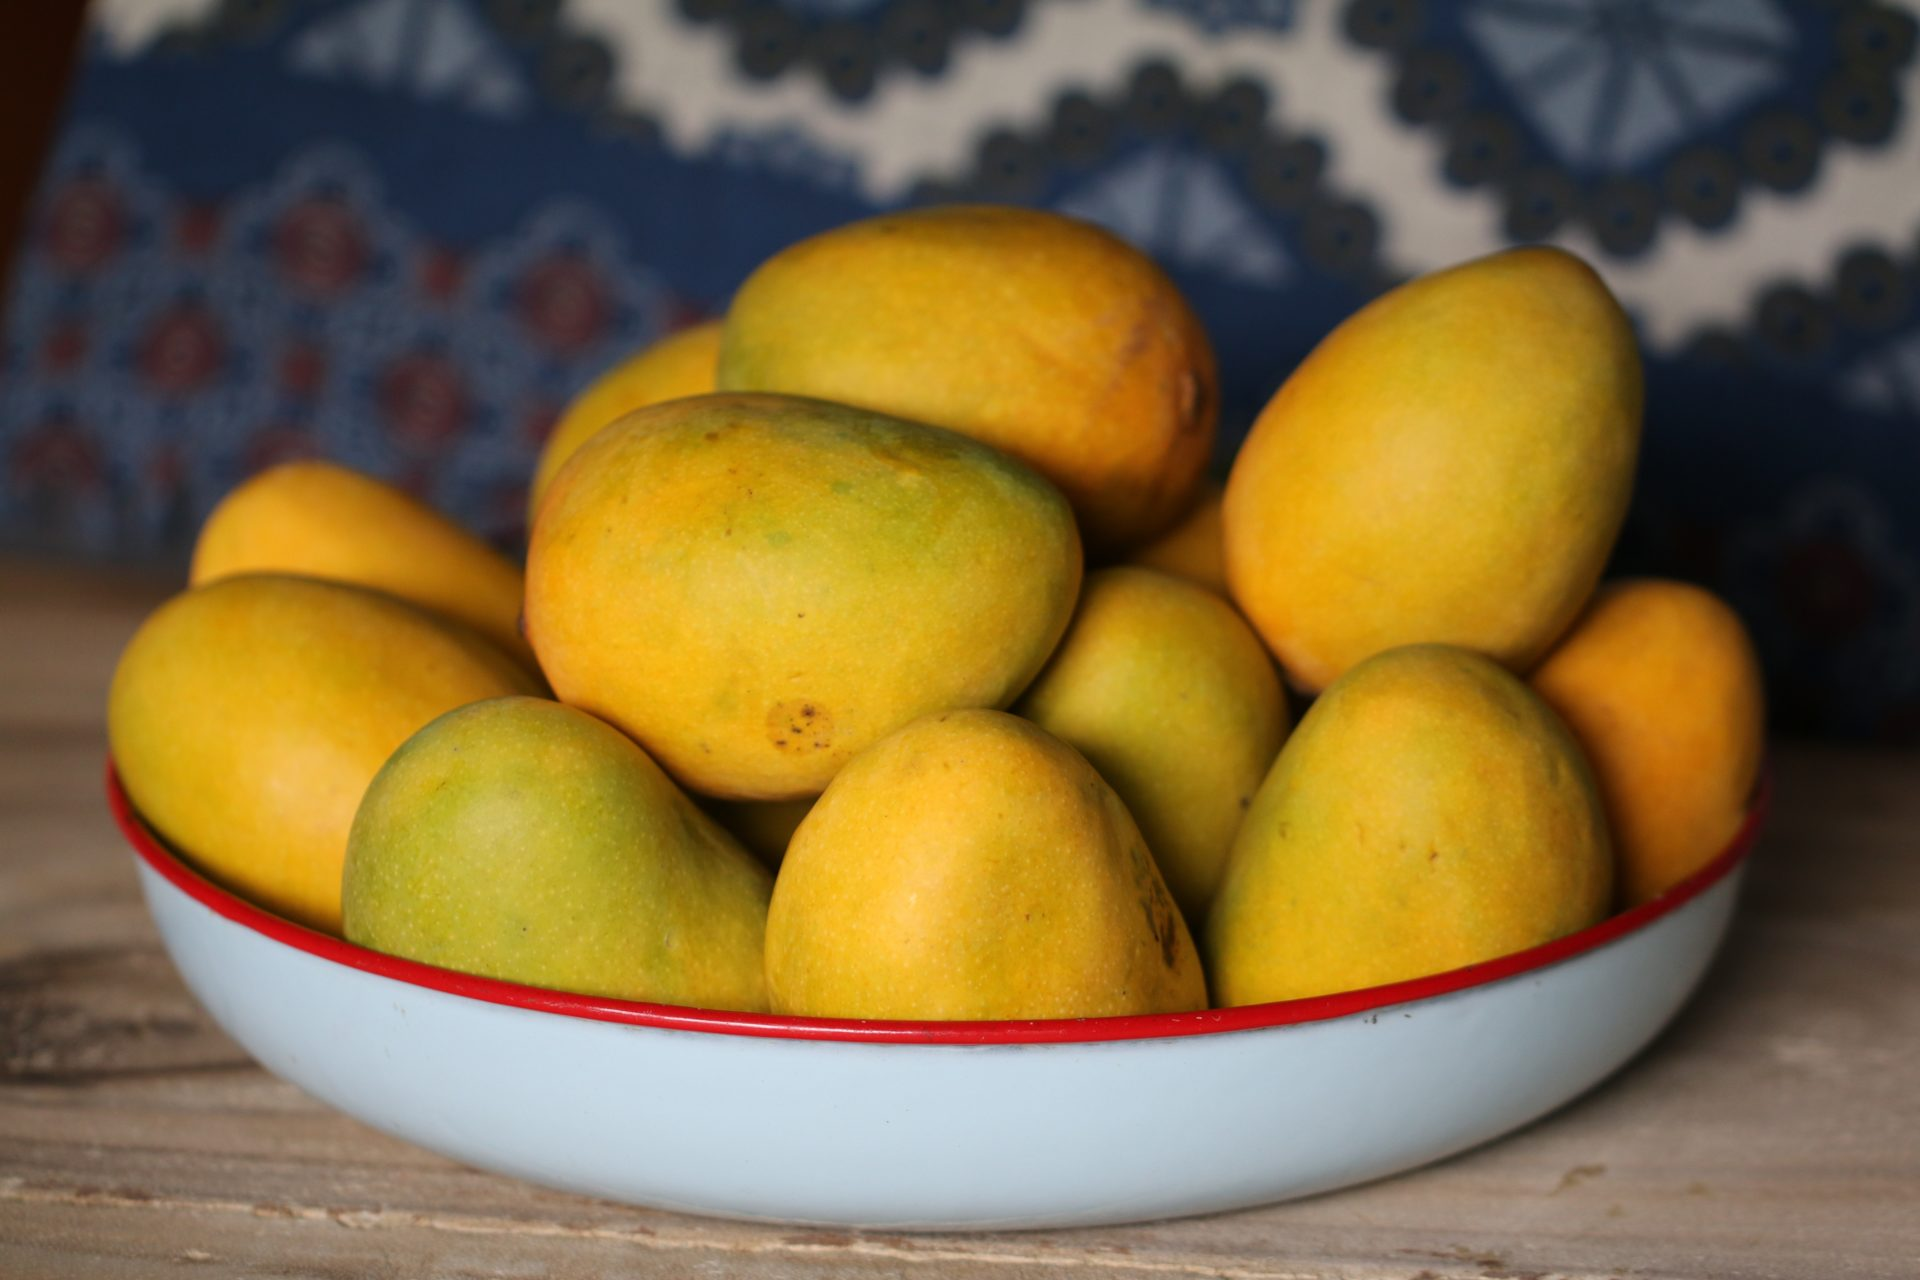 Bowl of Mangoes on Wood Counter